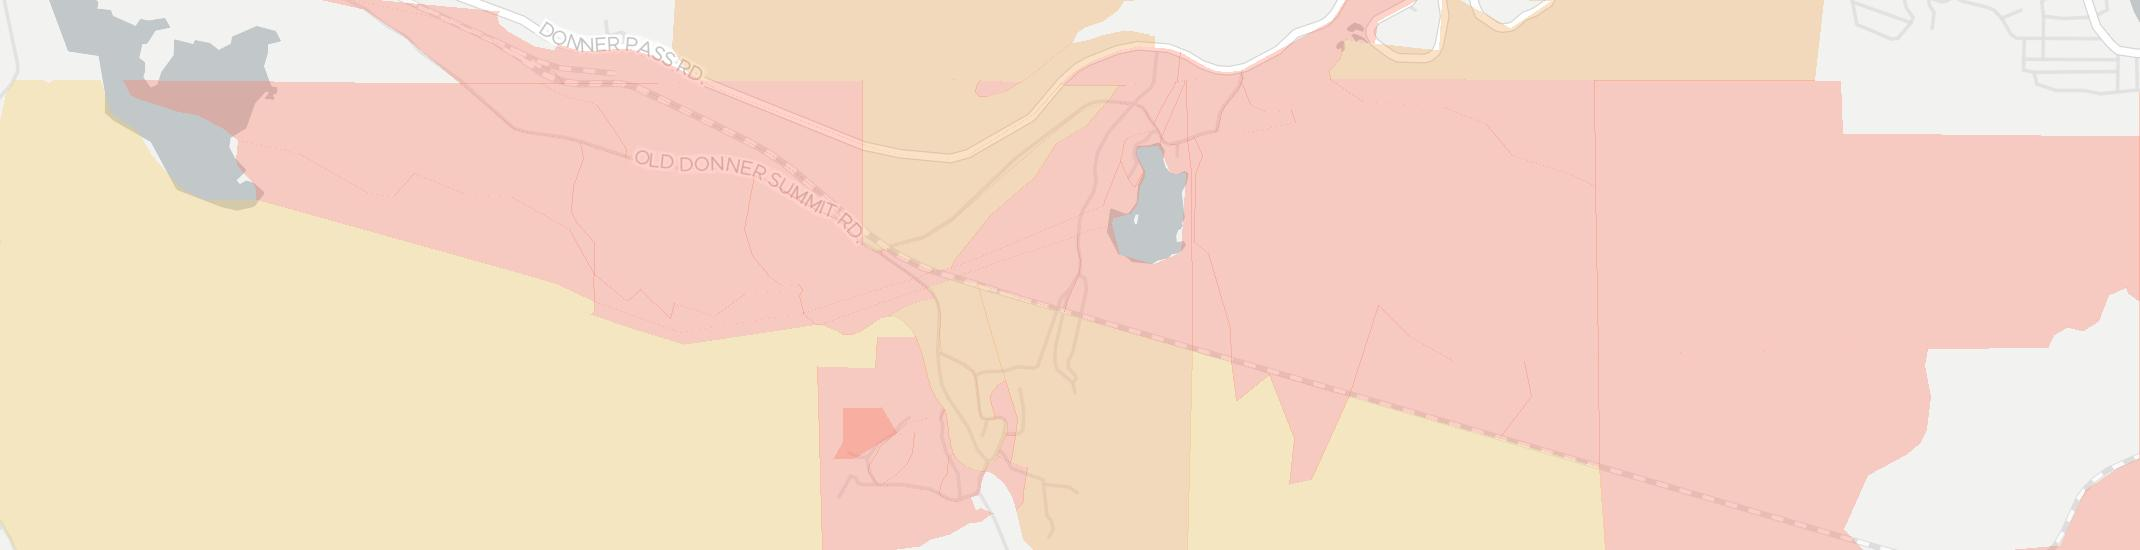 Norden Internet Competition Map. Click for interactive map.